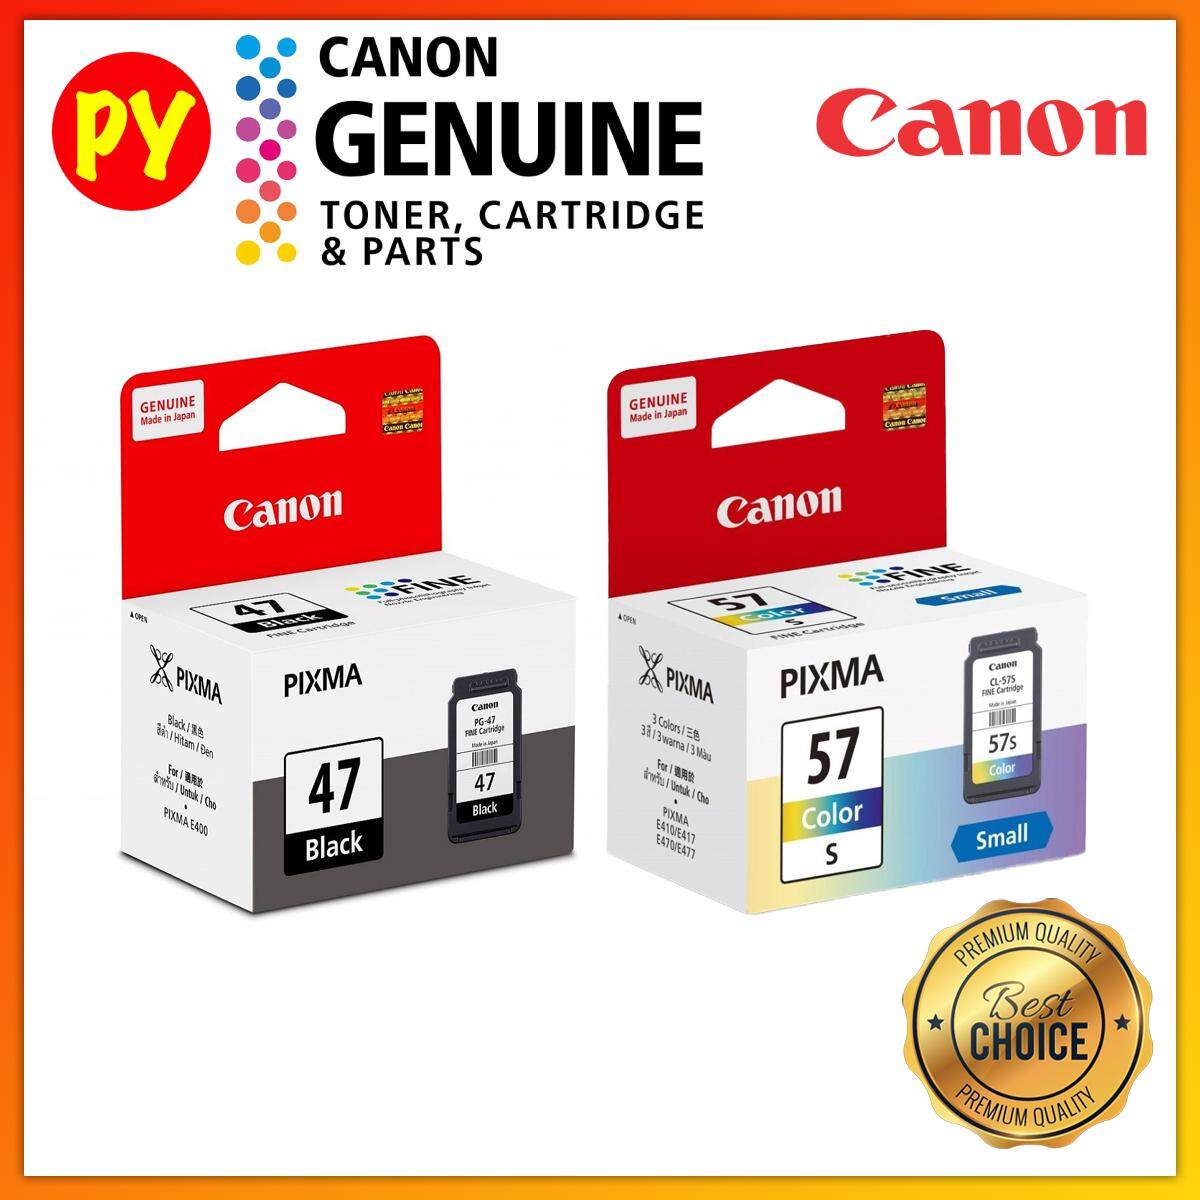 Canon Ink Jet Price In Malaysia Best Lazada Catridge Buat Test Cl 811 Pg 47 Black 57s Small 57